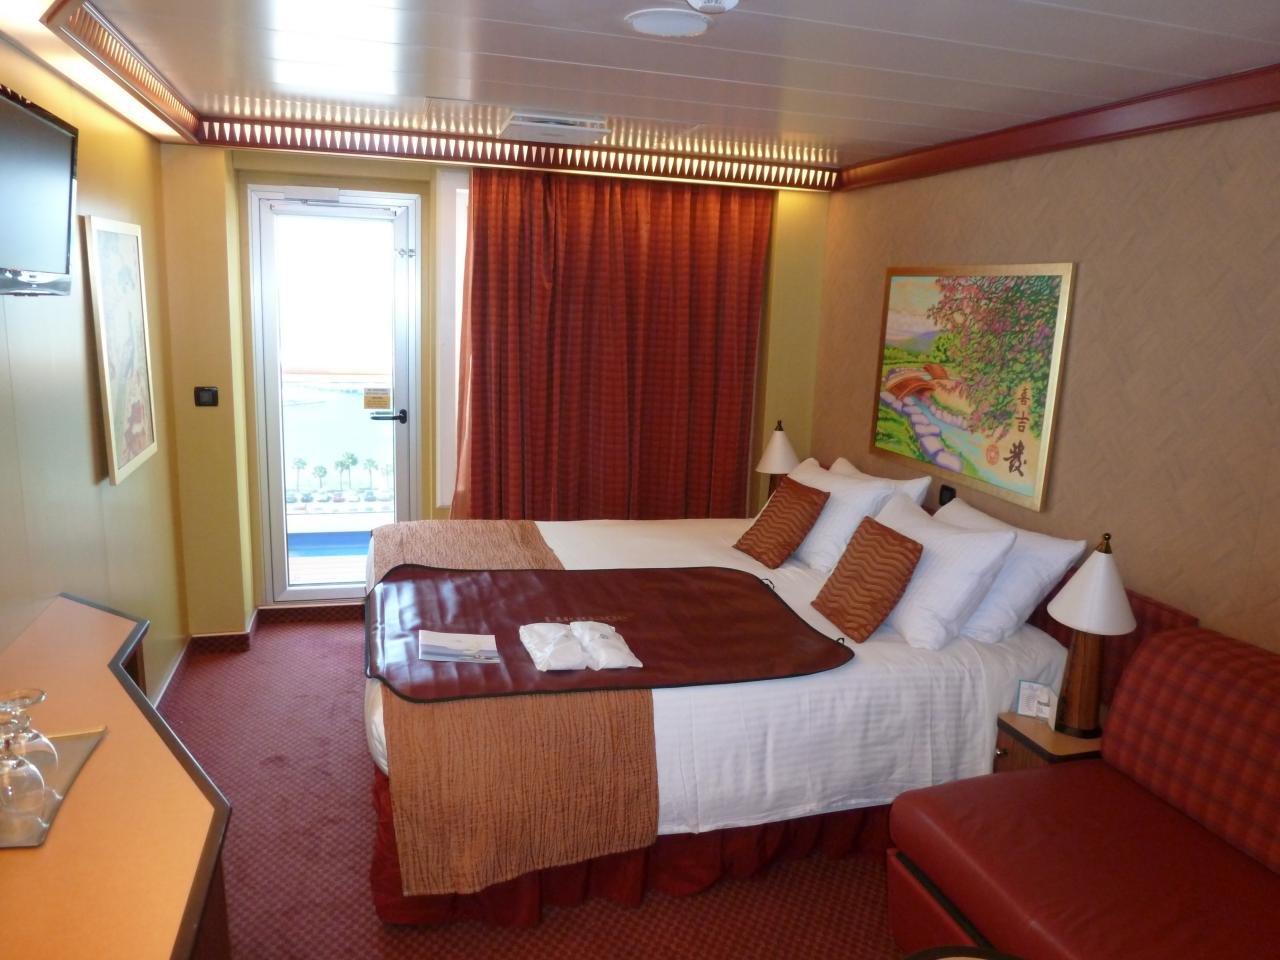 carnival balcony rooms Carnival Dream Cruise Review For Cabin 12208